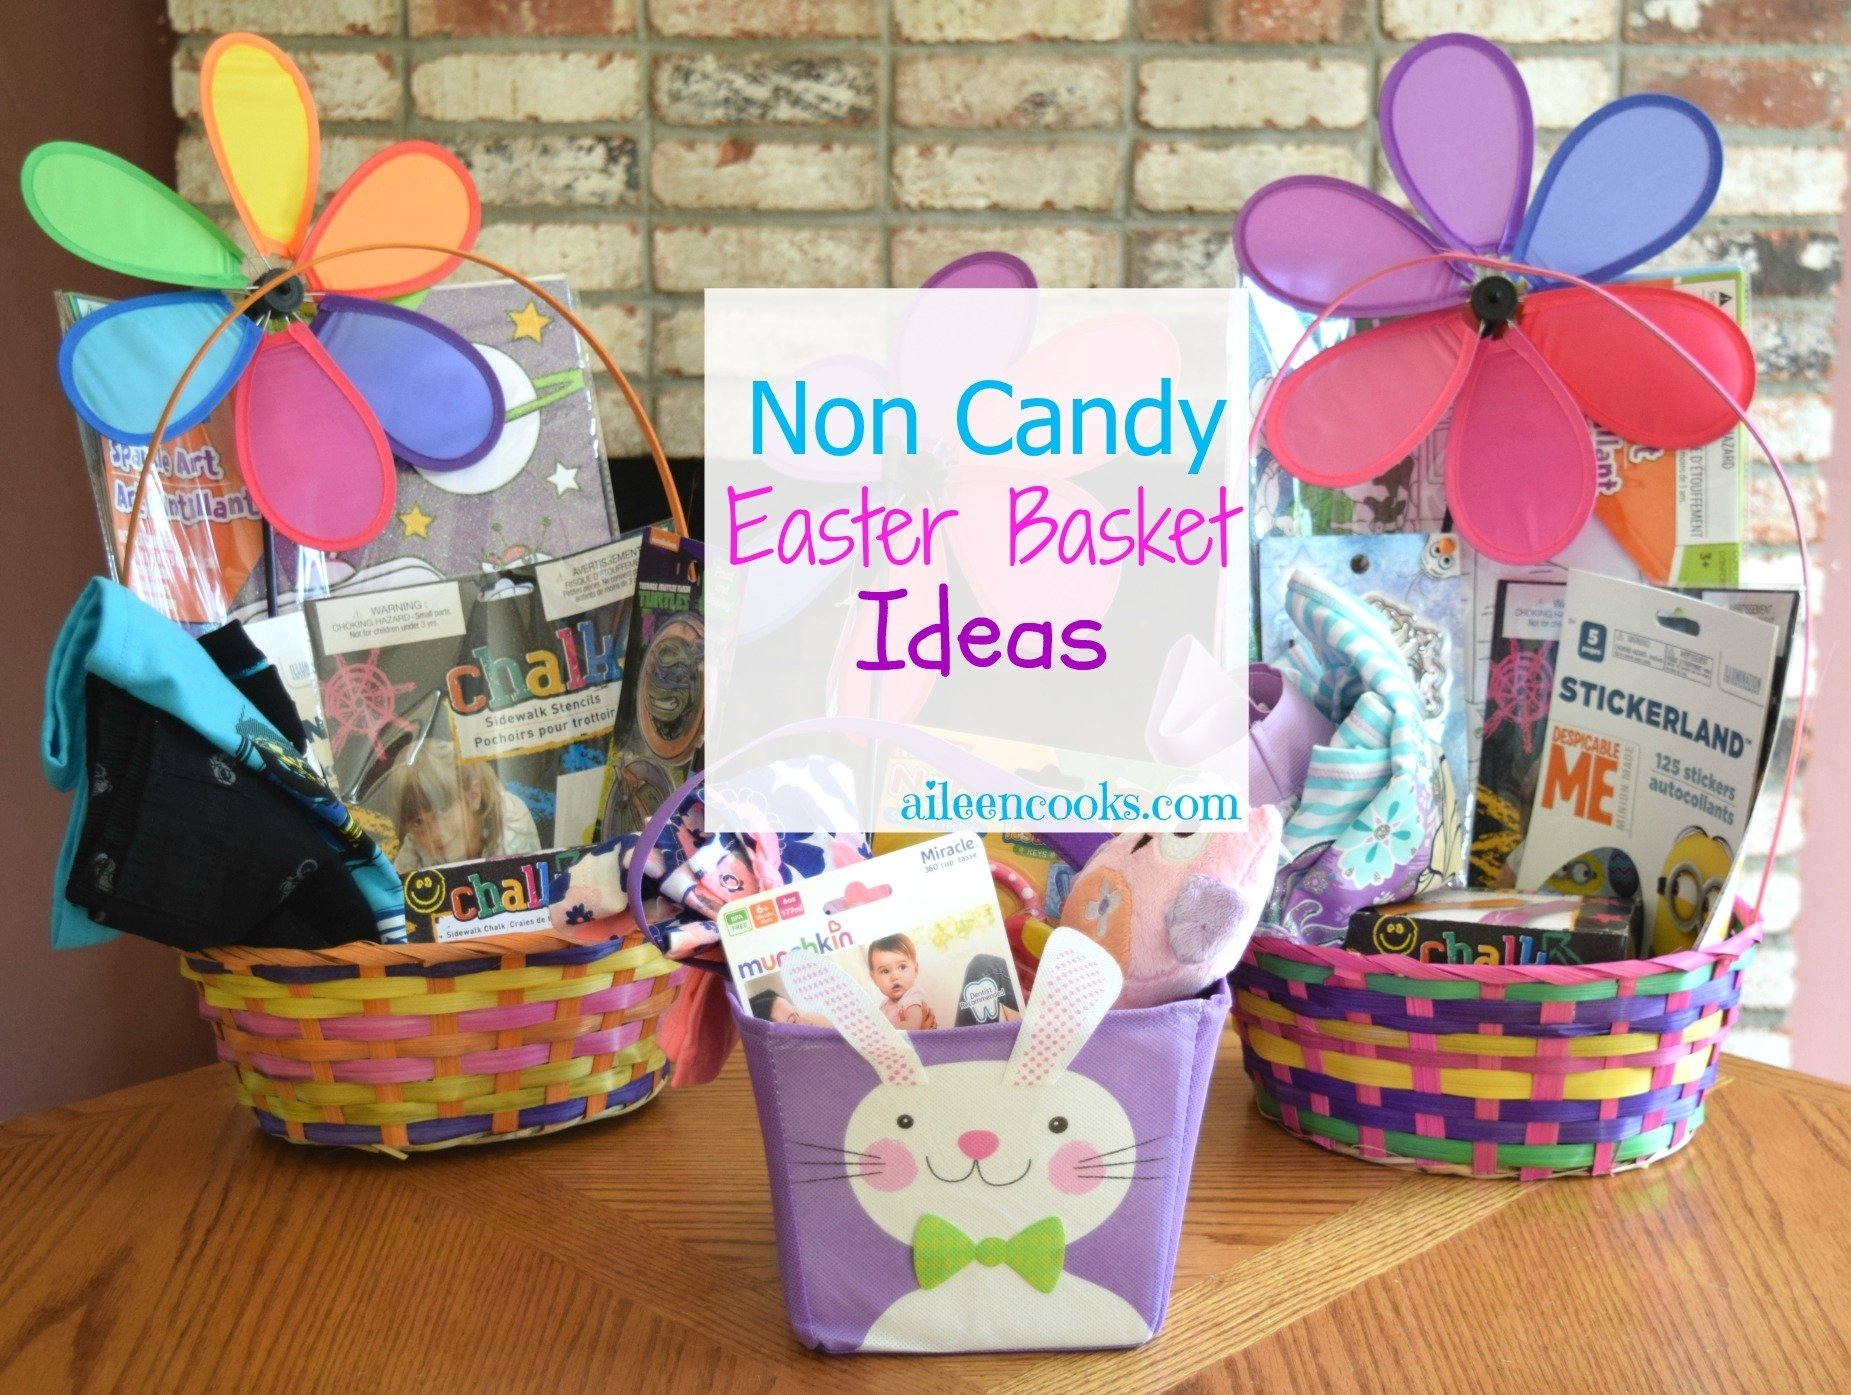 10 Cute Easter Basket Ideas For Infants non candy easter basket ideas aileen cooks 2021